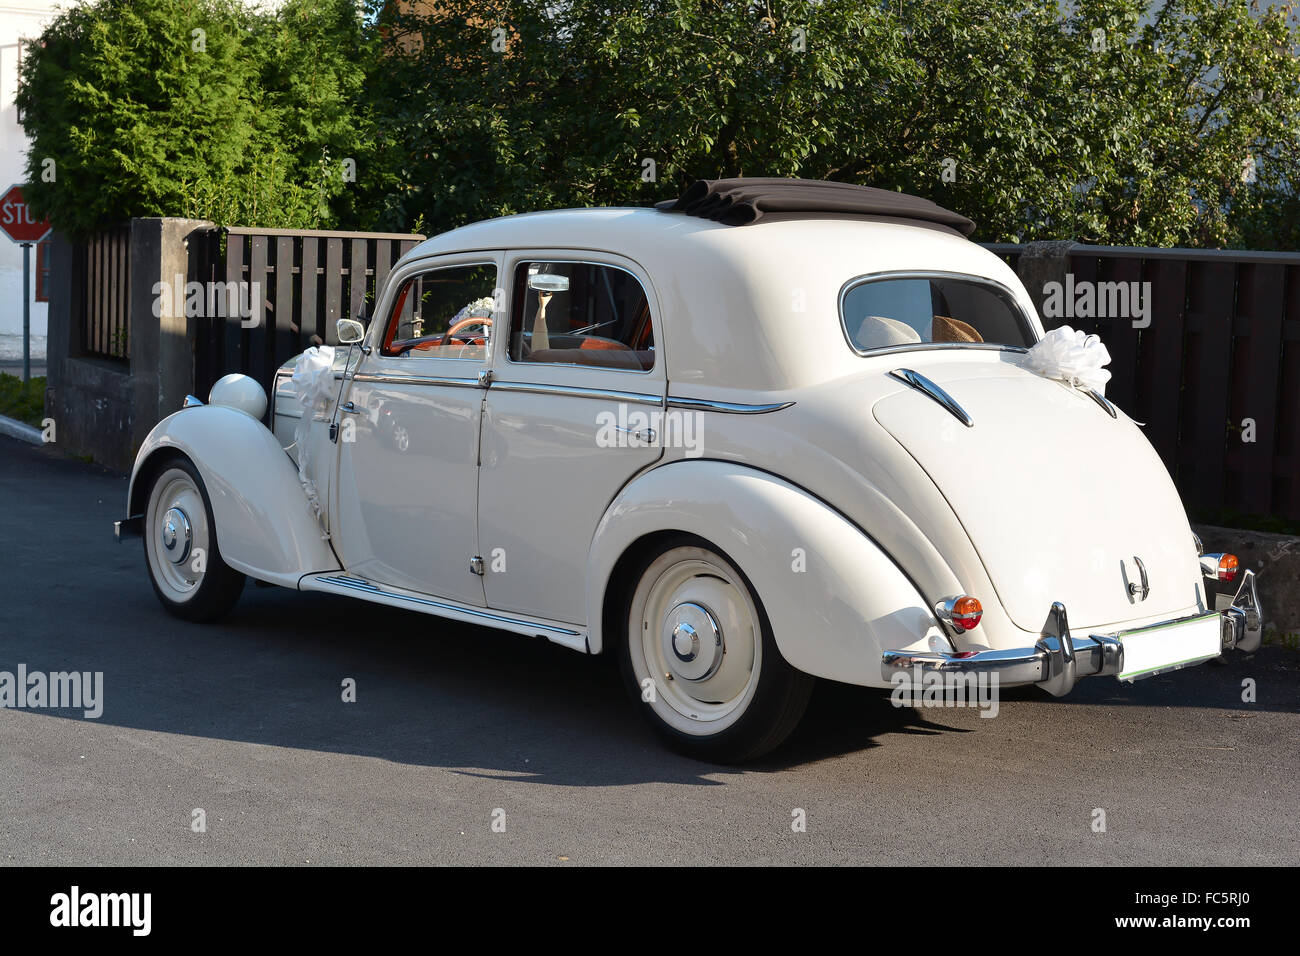 Wedding Car Rental Stock Photos & Wedding Car Rental Stock Images ...